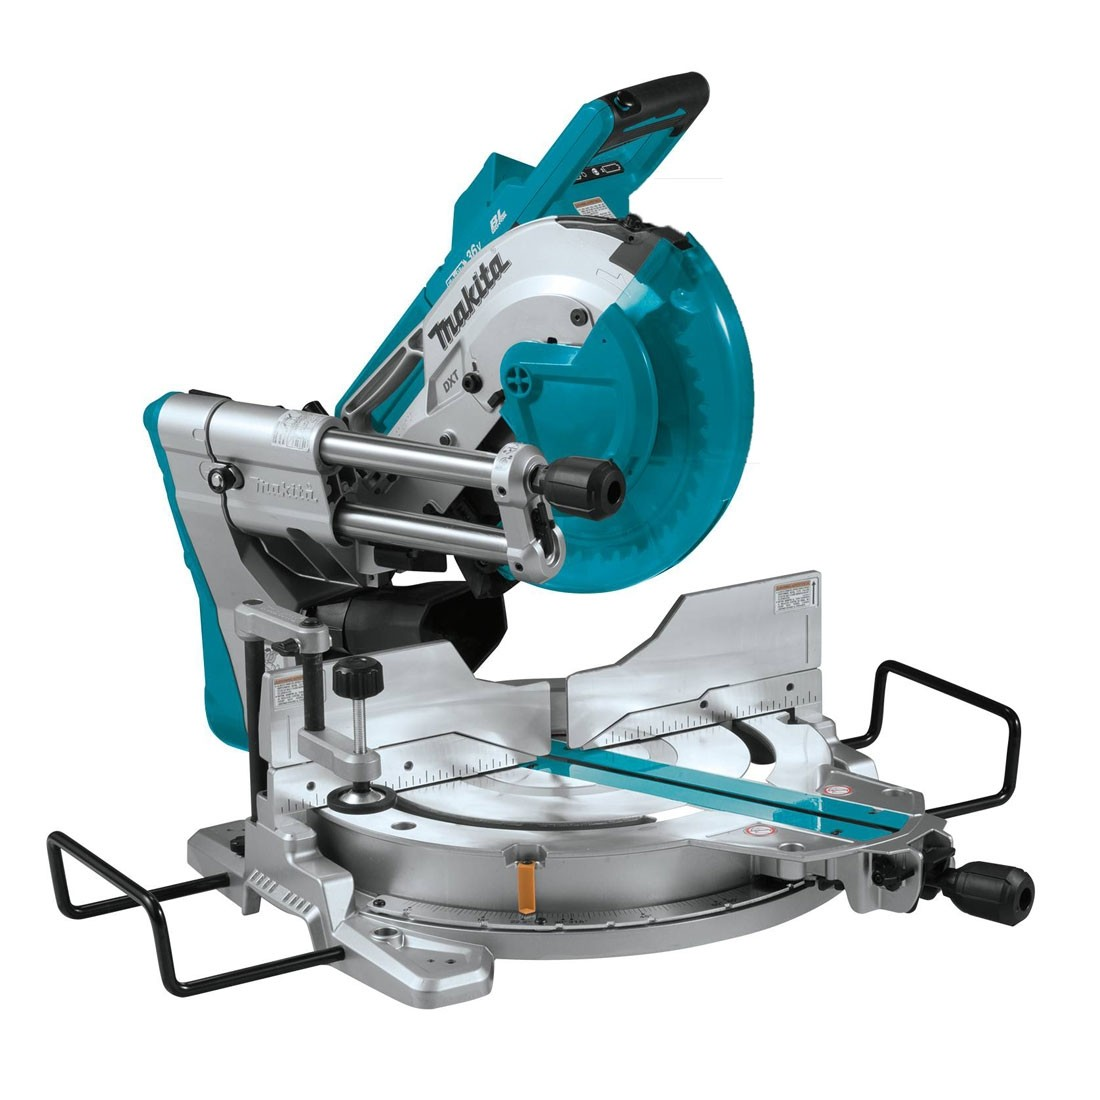 Makita DLS110Z Twin 18v Cordless Brushless Slide Compound 260mm Mitre Saw Body Only